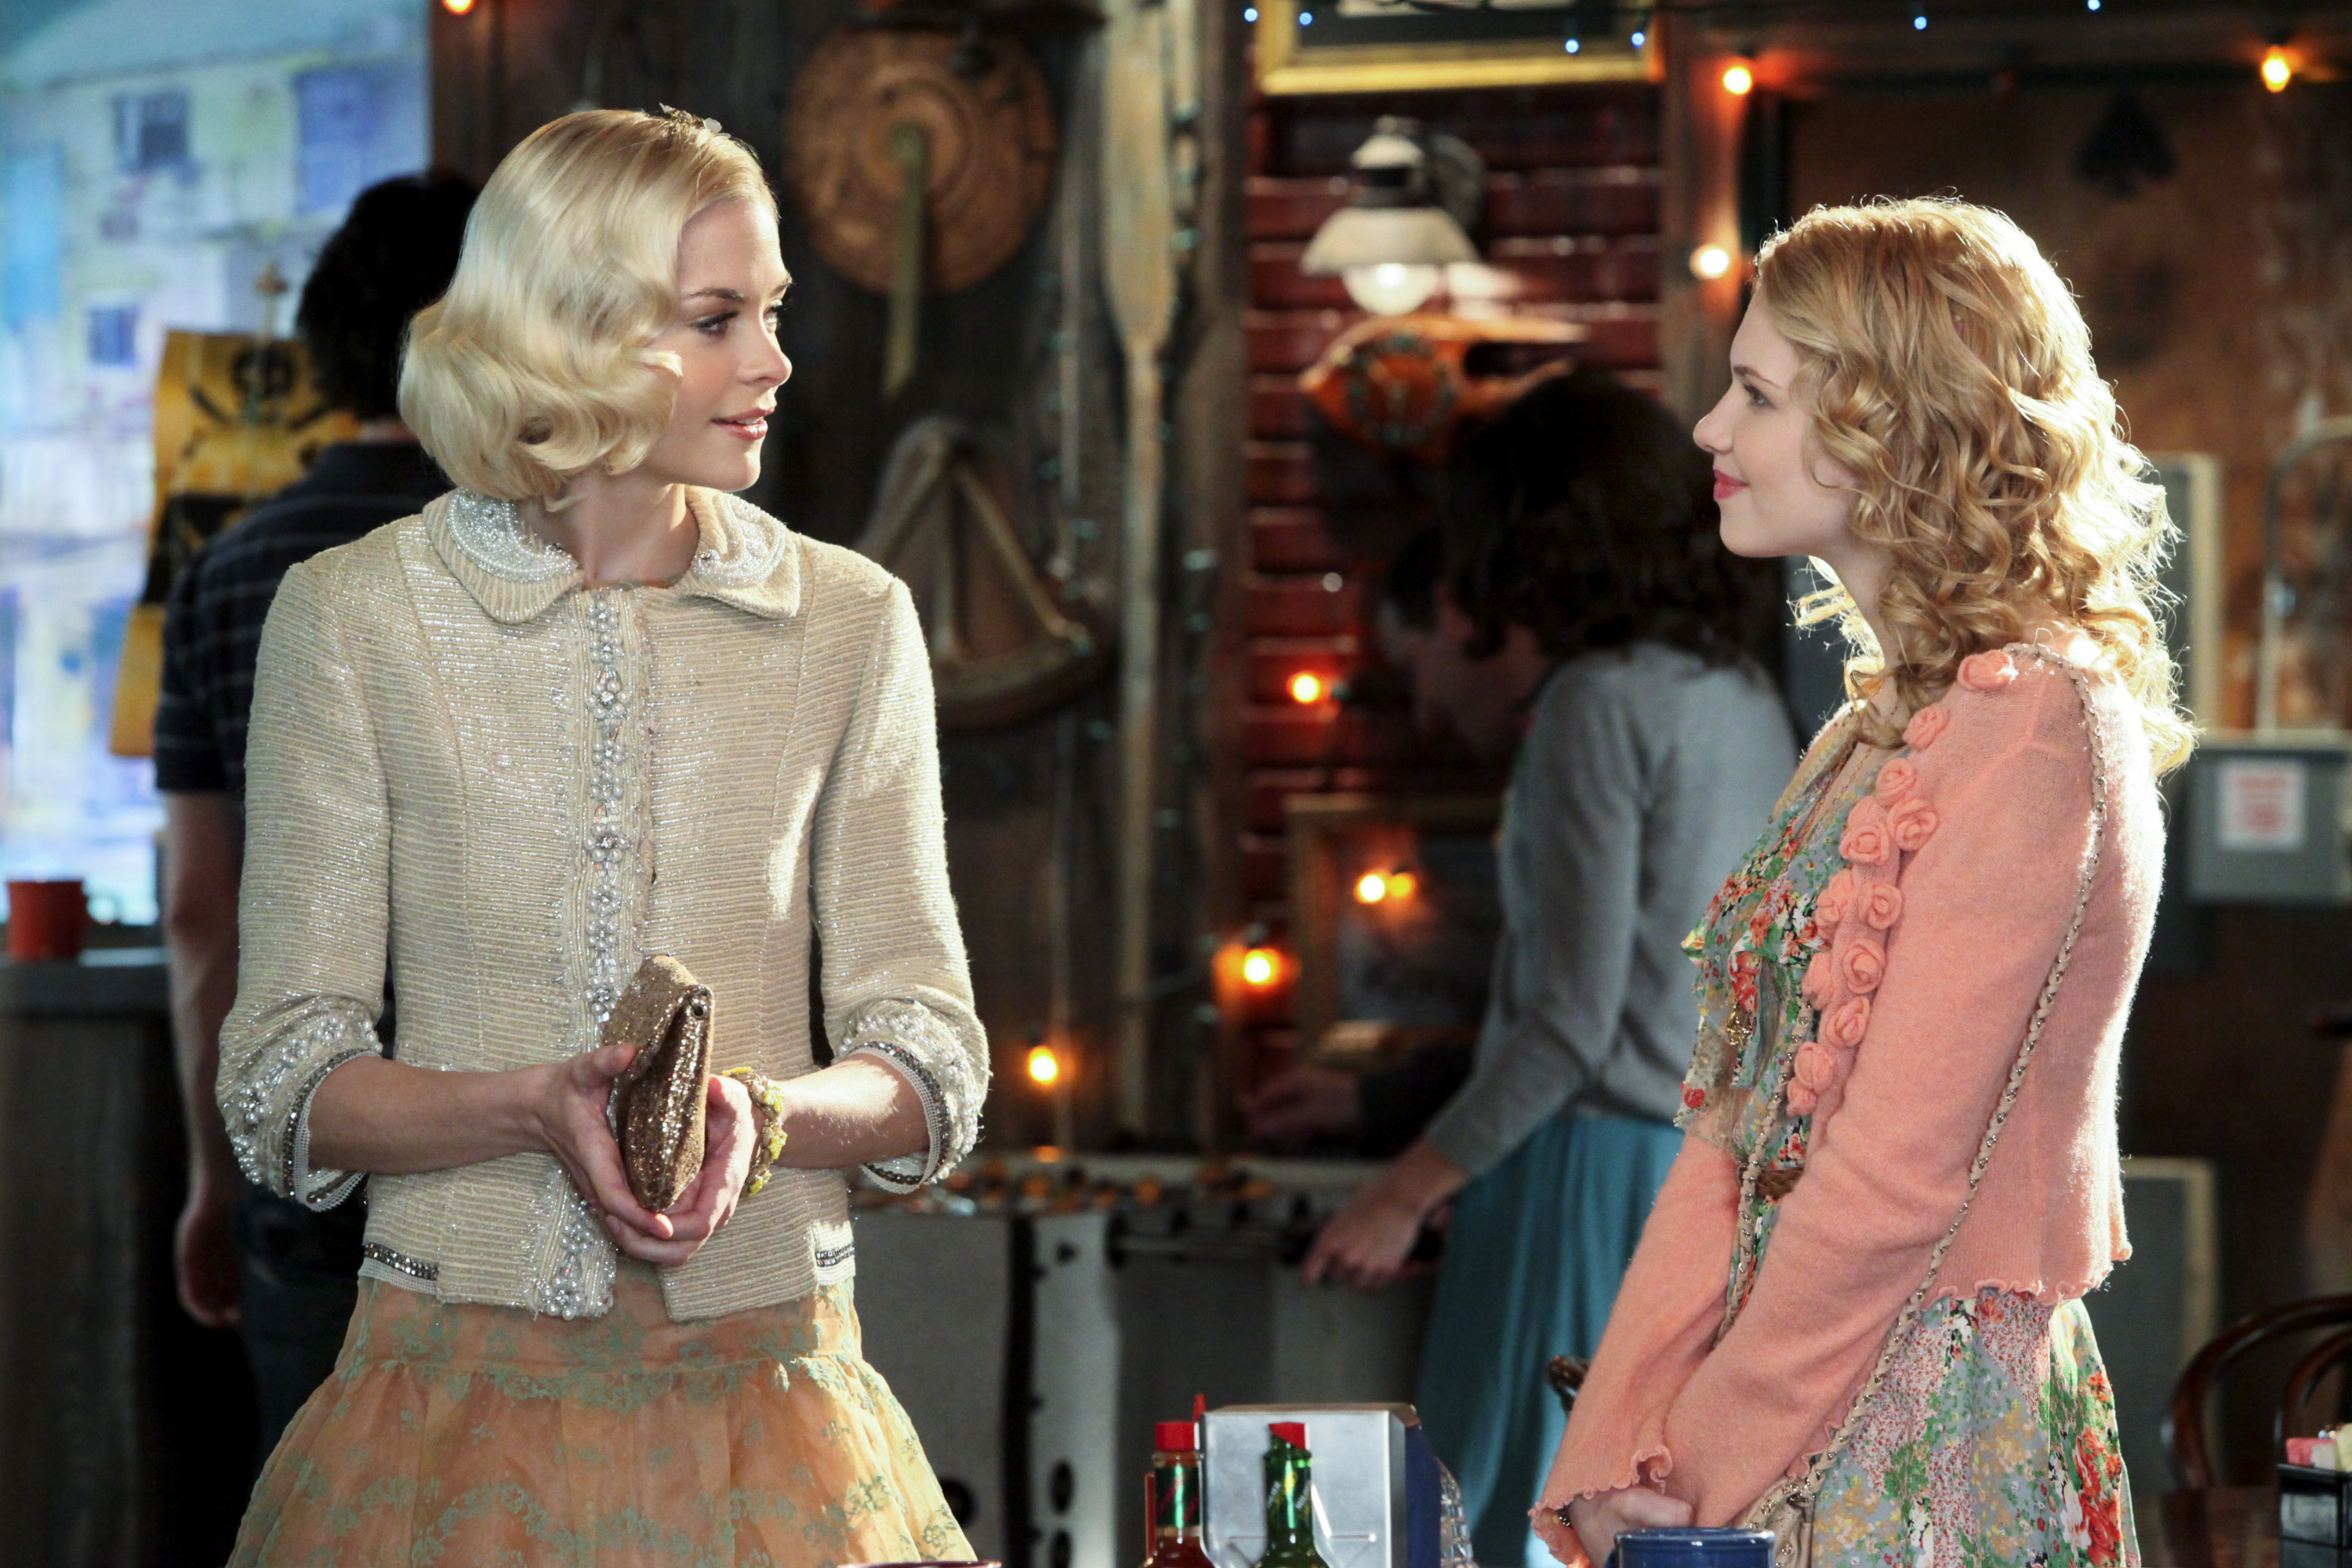 HART OF DIXIE's Claudia Lee Reacts to The CW's Series Renewal